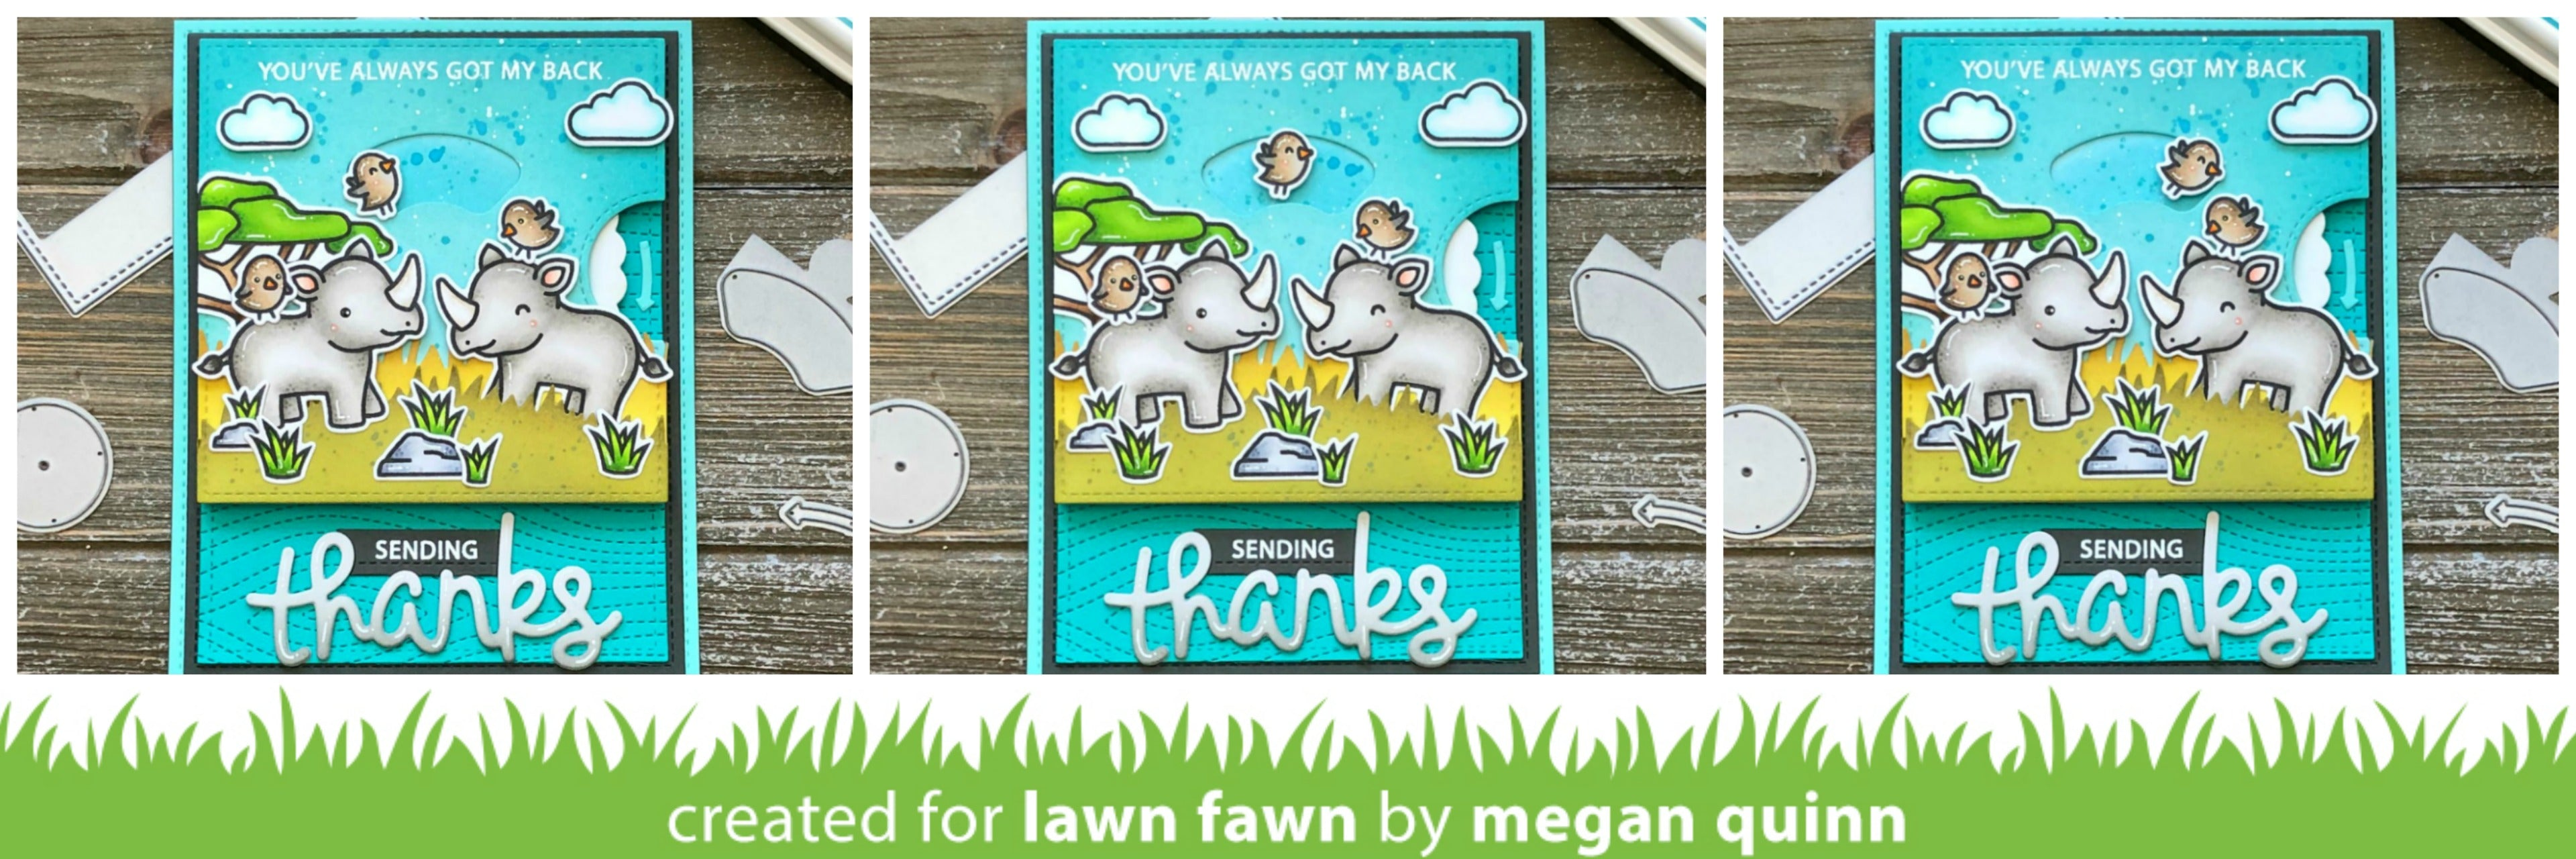 HA + Lawn Fawn Big Thanks